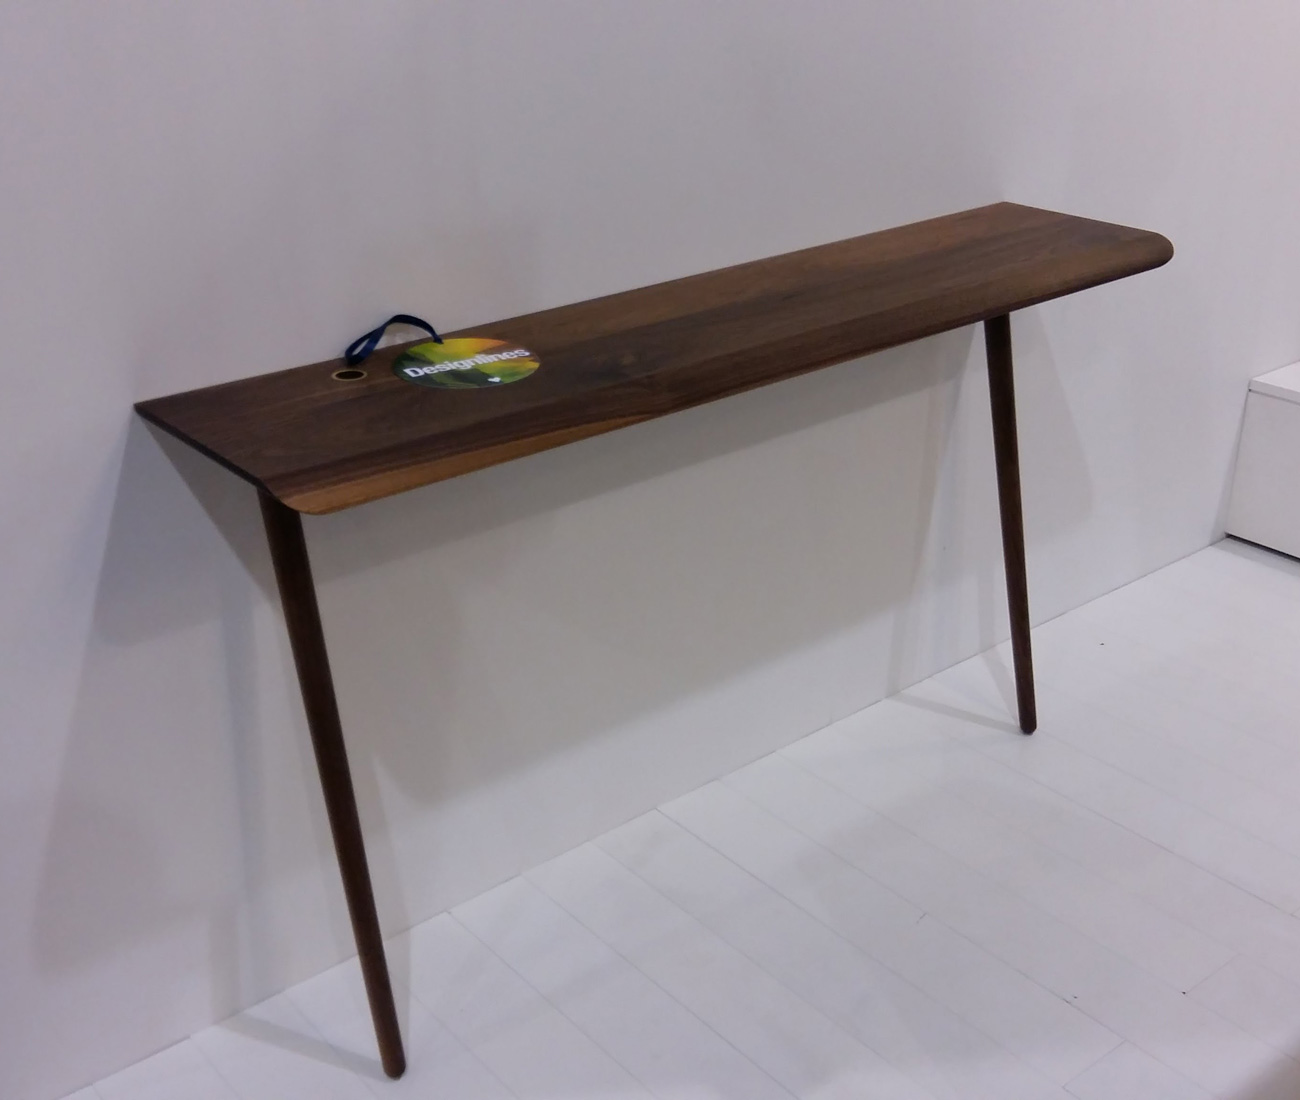 T406 by Kastella. Love the compact footprint of this walnut leaning desk and the combination of the impeccable traditional craftsmenship with the subtle digital world disruption of the metal eyelet for cords and cables. A perfect perch for a laptop, or it would make a great console table.